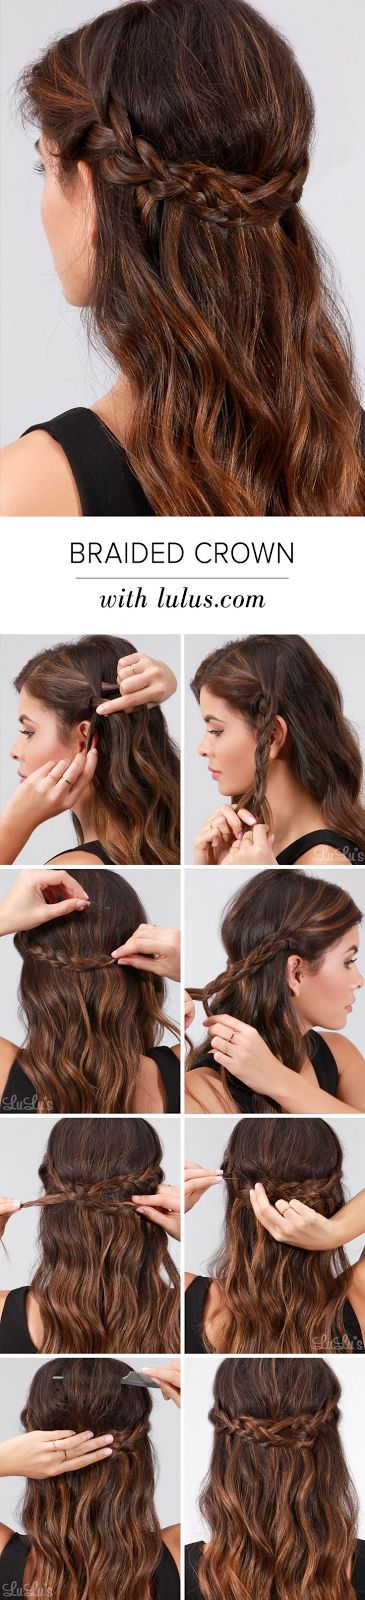 Braided Crown Hairstyle Tutorial                                                                                                                                                                                 More